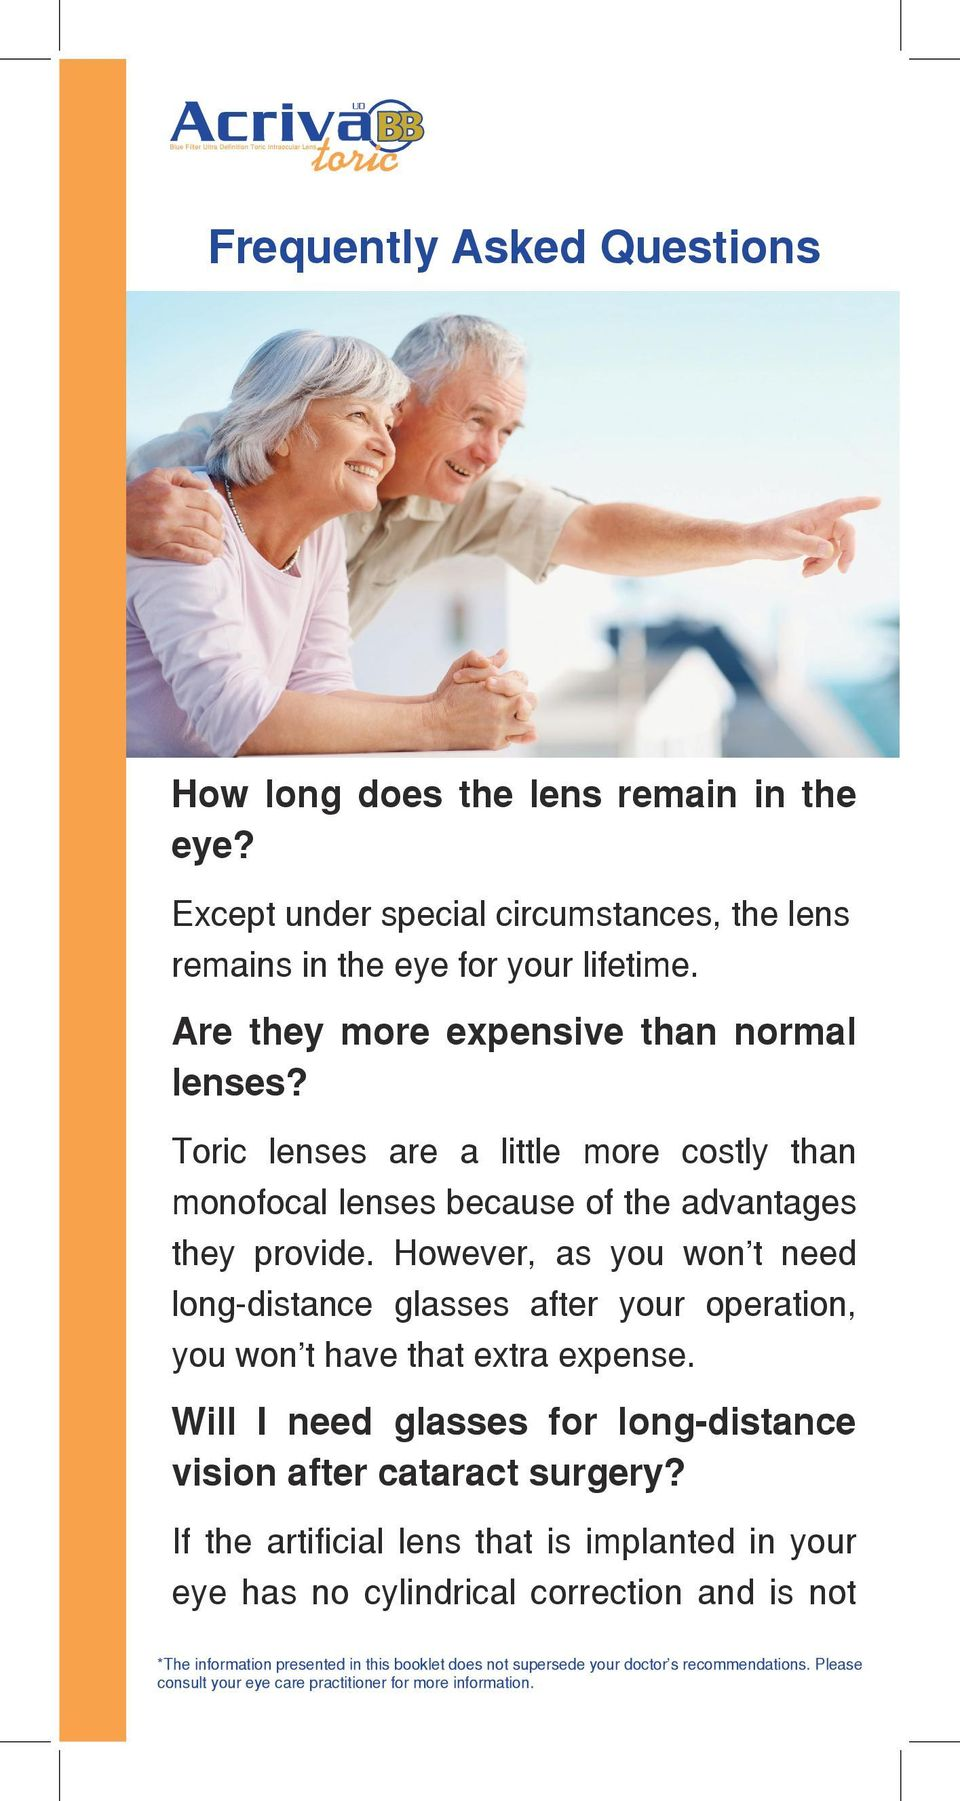 Toric lenses are a little more costly than monofocal lenses because of the advantages they provide.